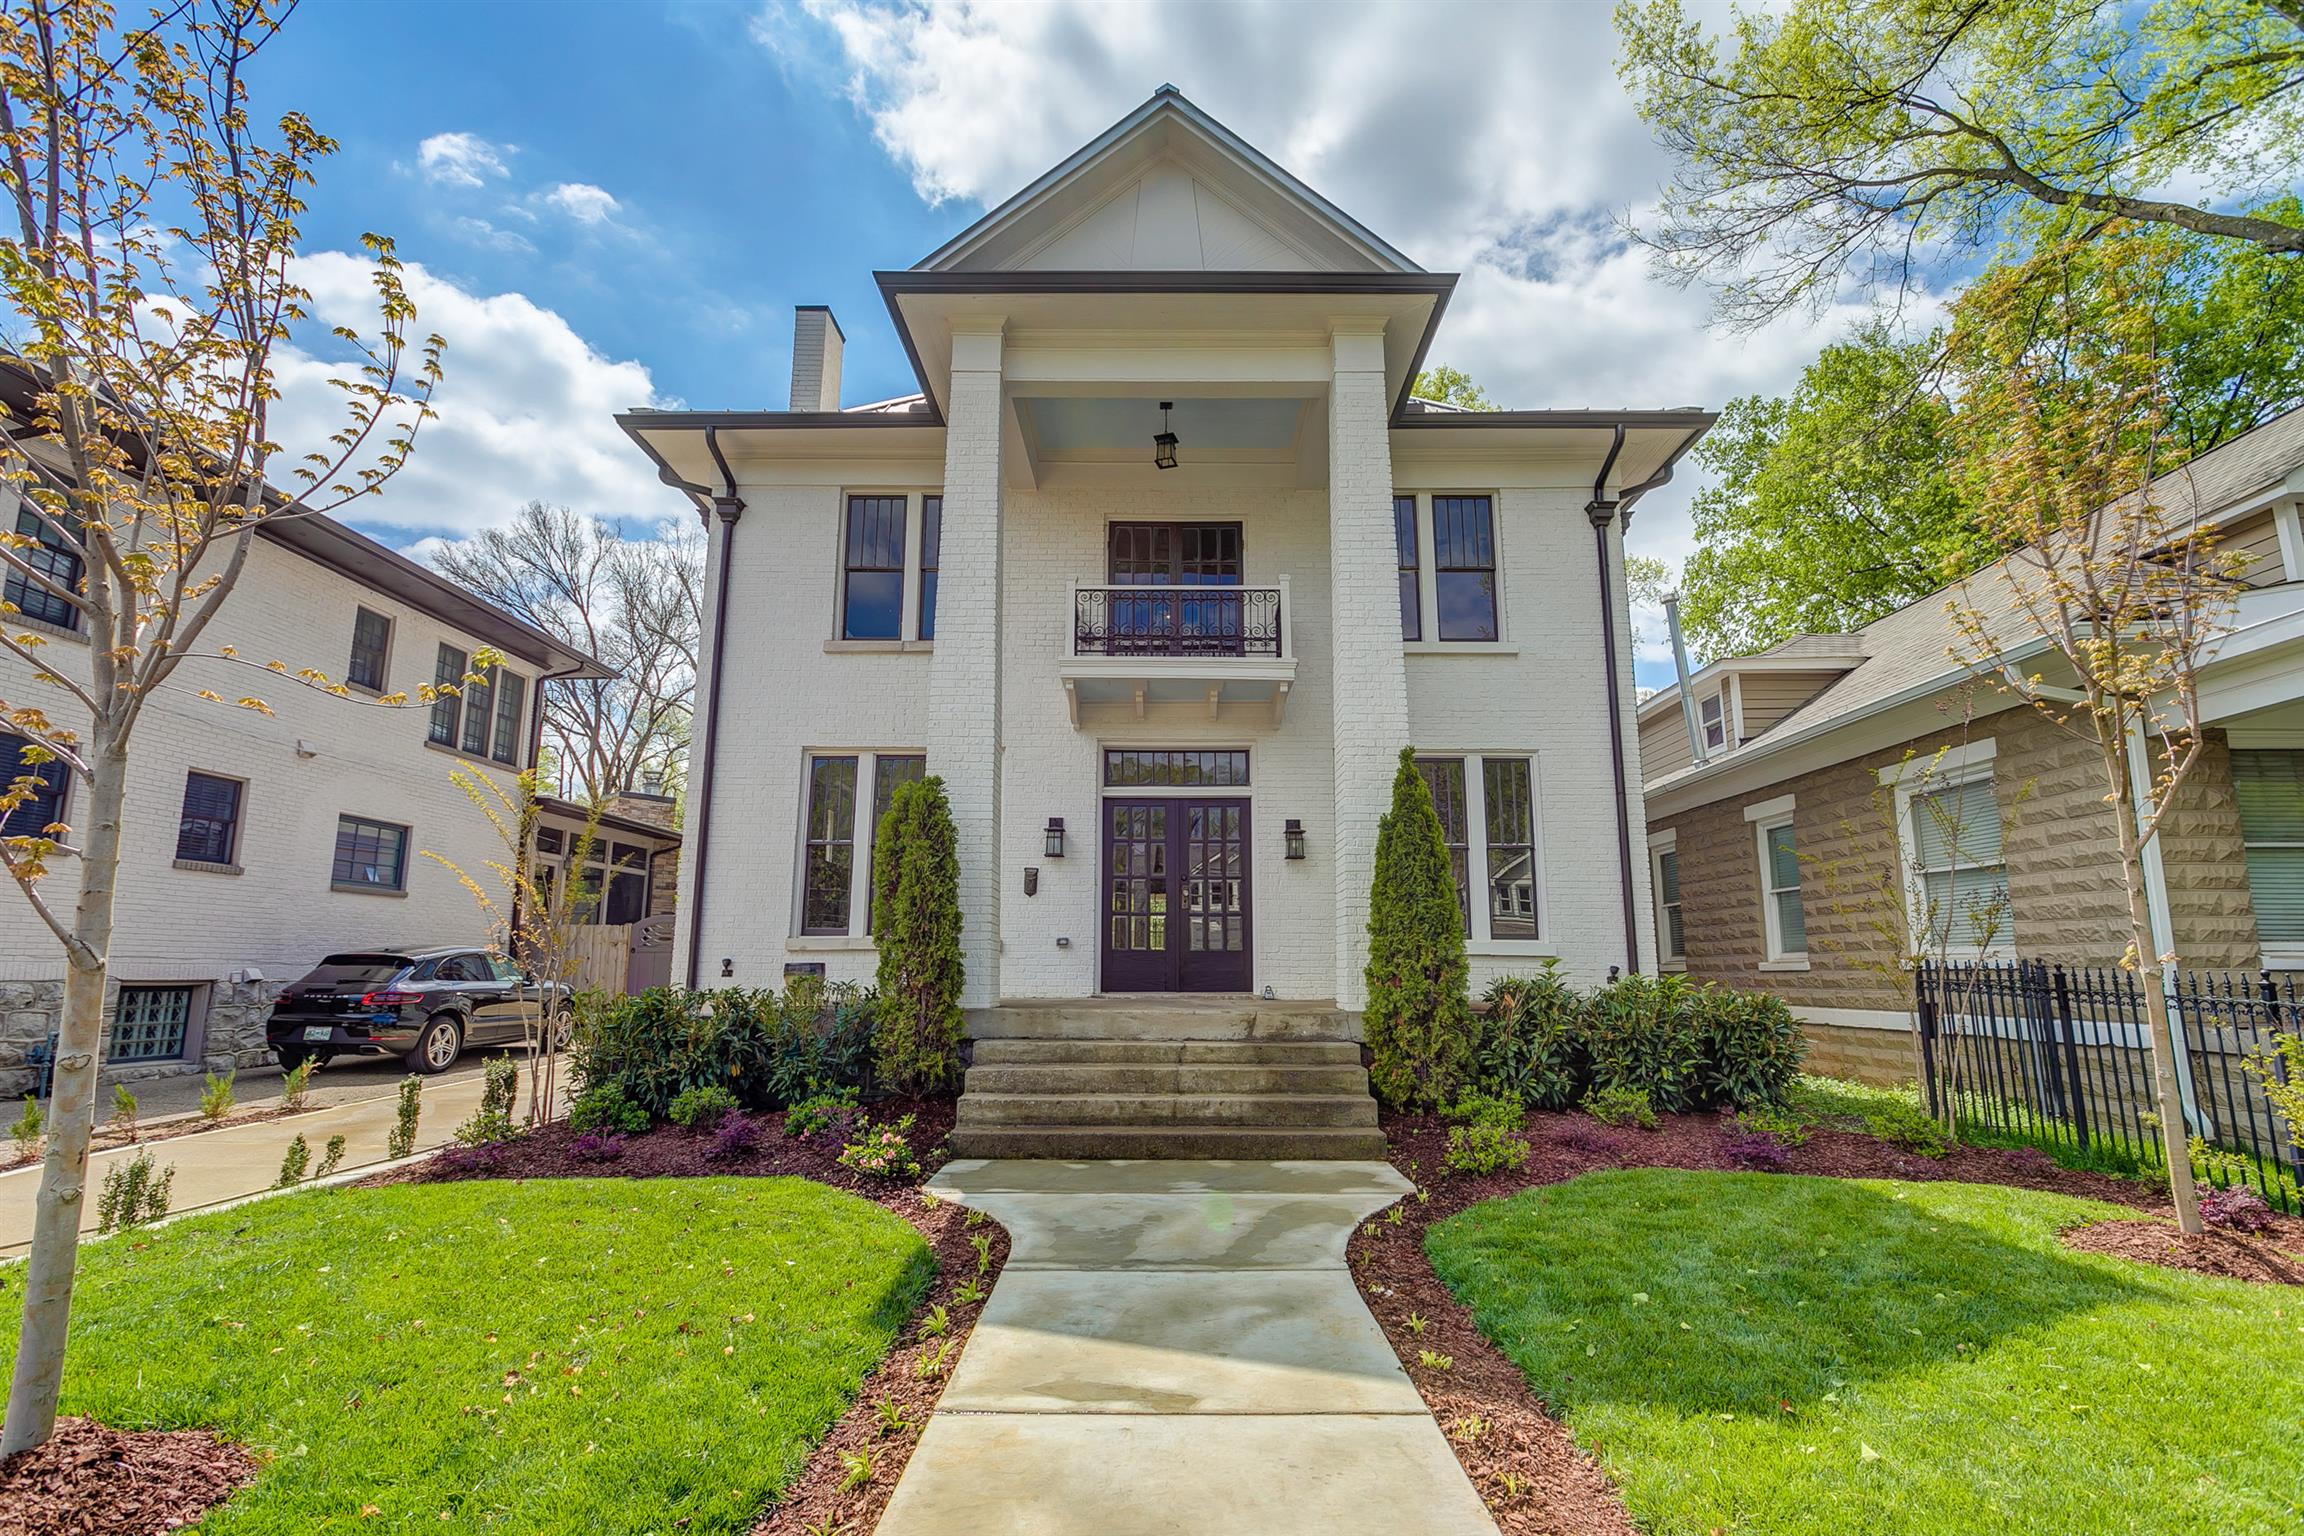 Historic charm abounds in this beautiful 2017 renovation. New electrical, plumbing, 3 HVACs, tankless water heater w/ separate water heater for kitchen, spray-foam insulation throughout, smart thermostats, metal roof, 2 indoor &1 outdoor fireplaces. Luxury kitchen appliances. Excellent interior/exterior entertaining w/ accordion doors and windows!